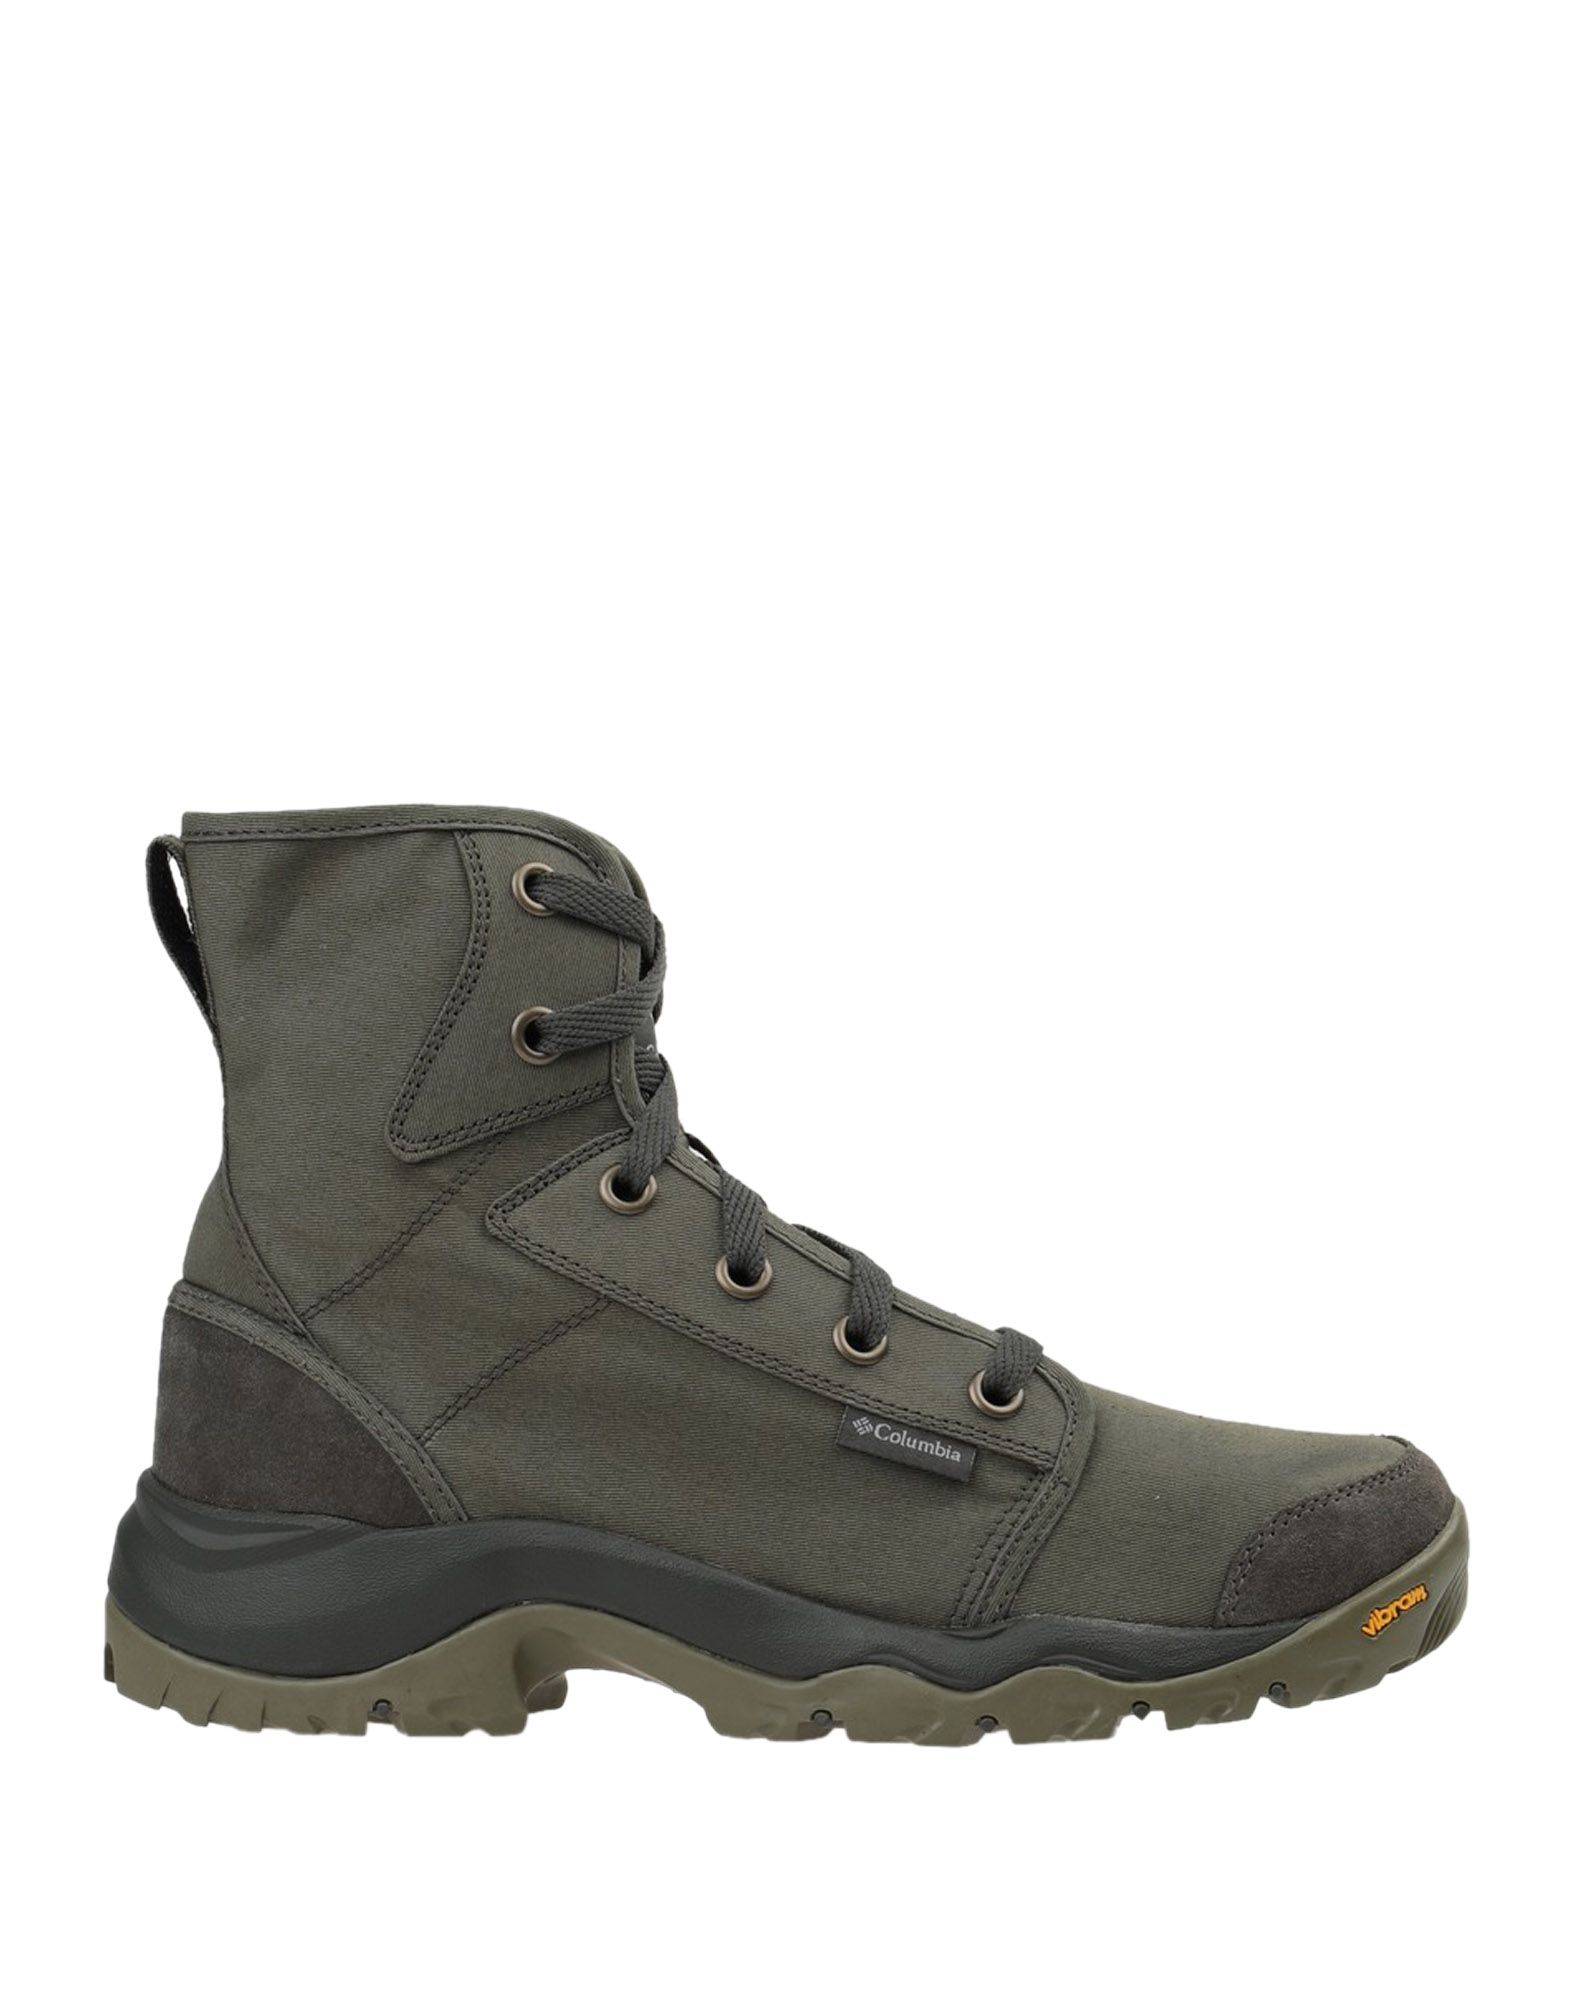 Columbia Boots ANKLE BOOTS